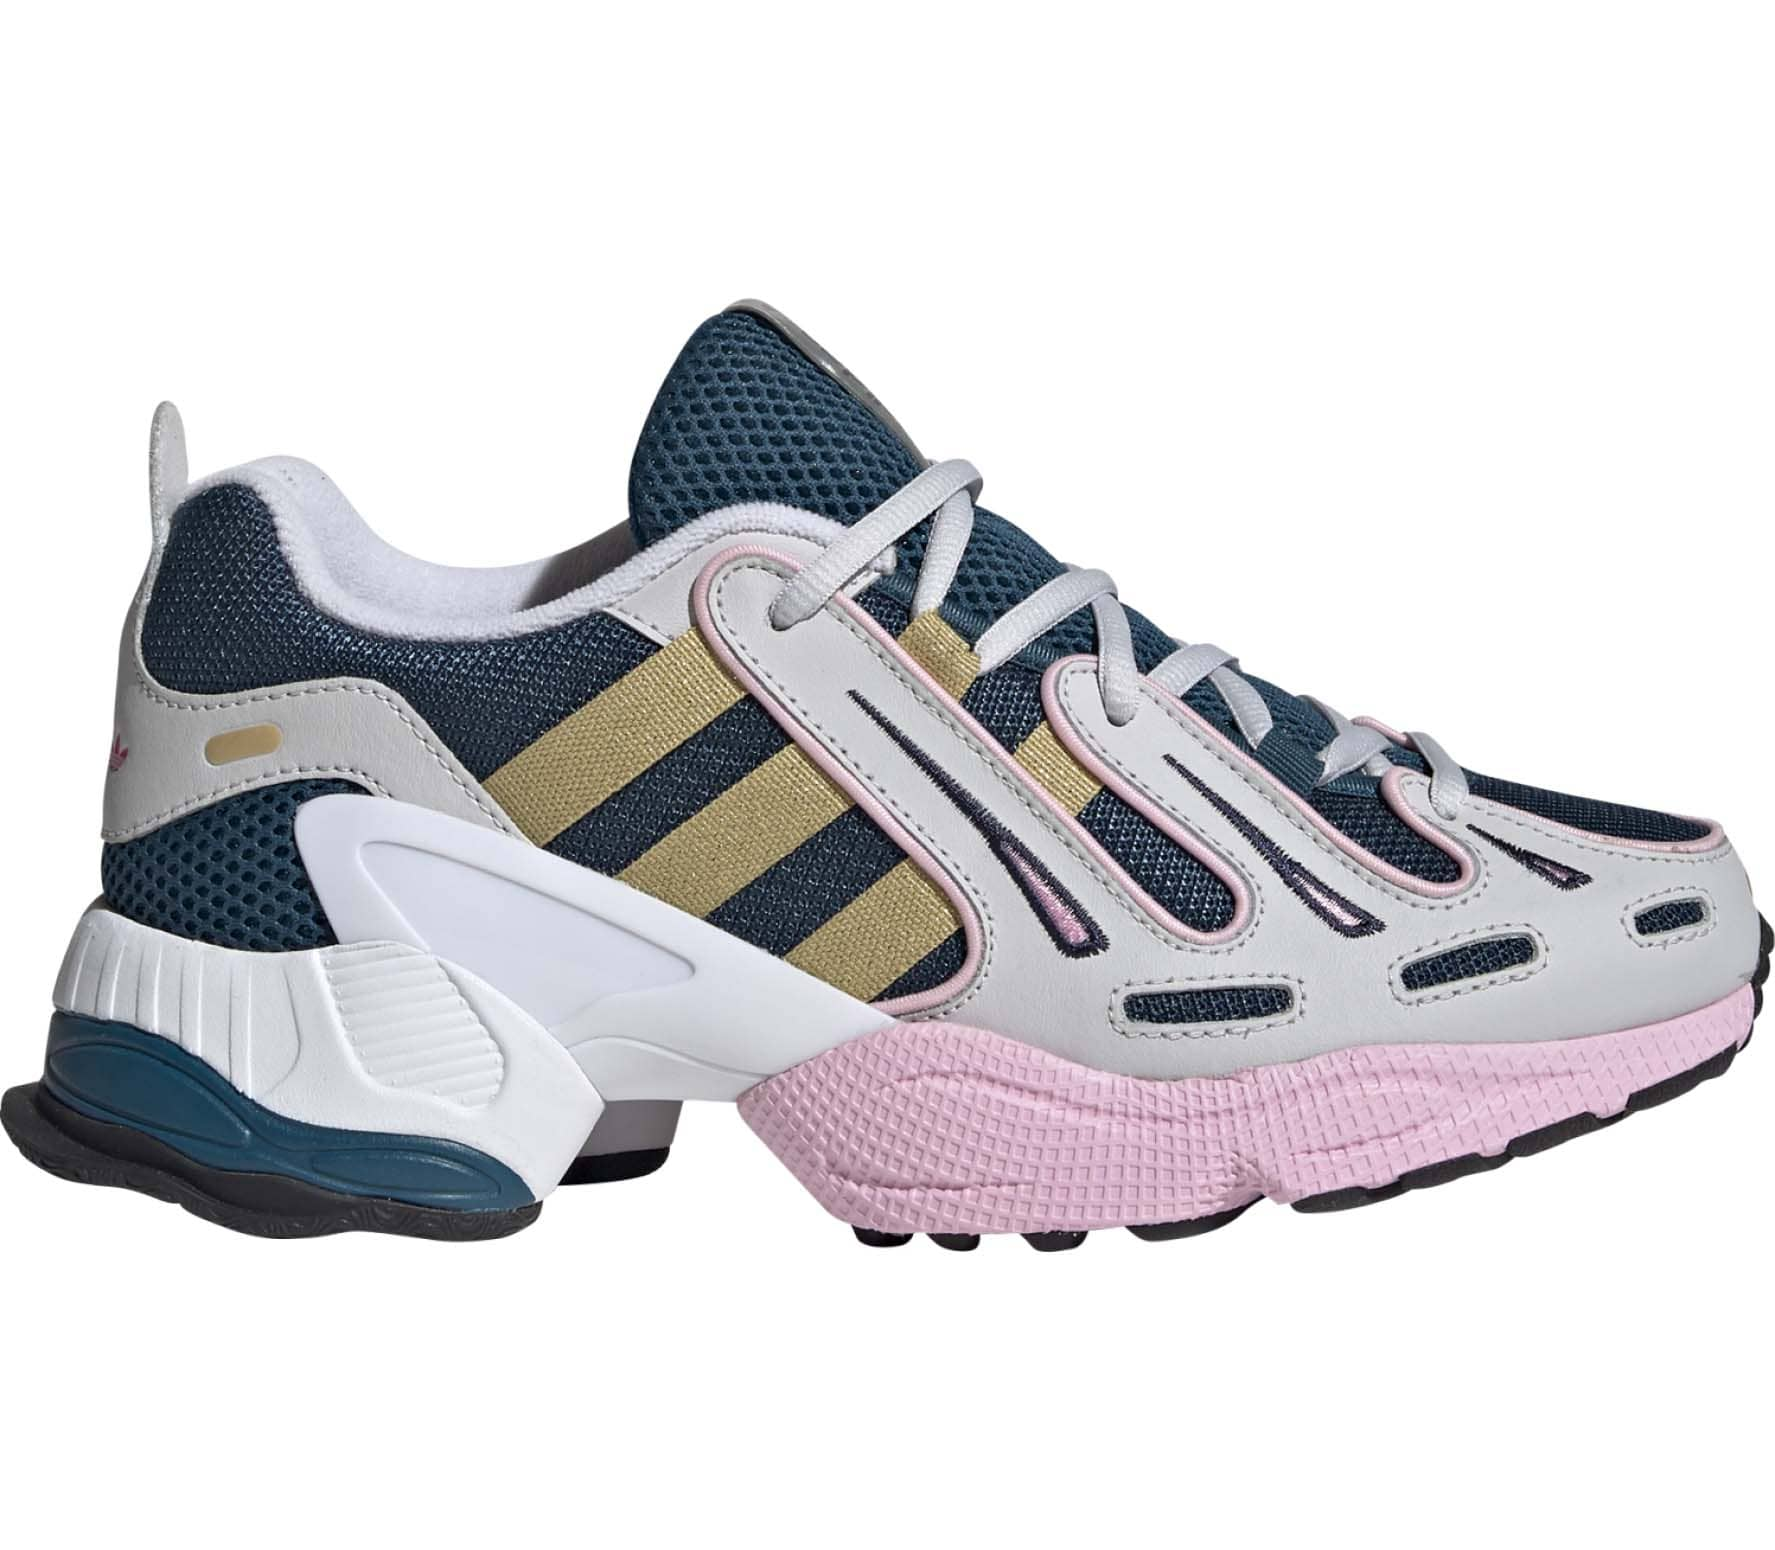 Gazelle Adidas : Buy cheap Adidas shoes online